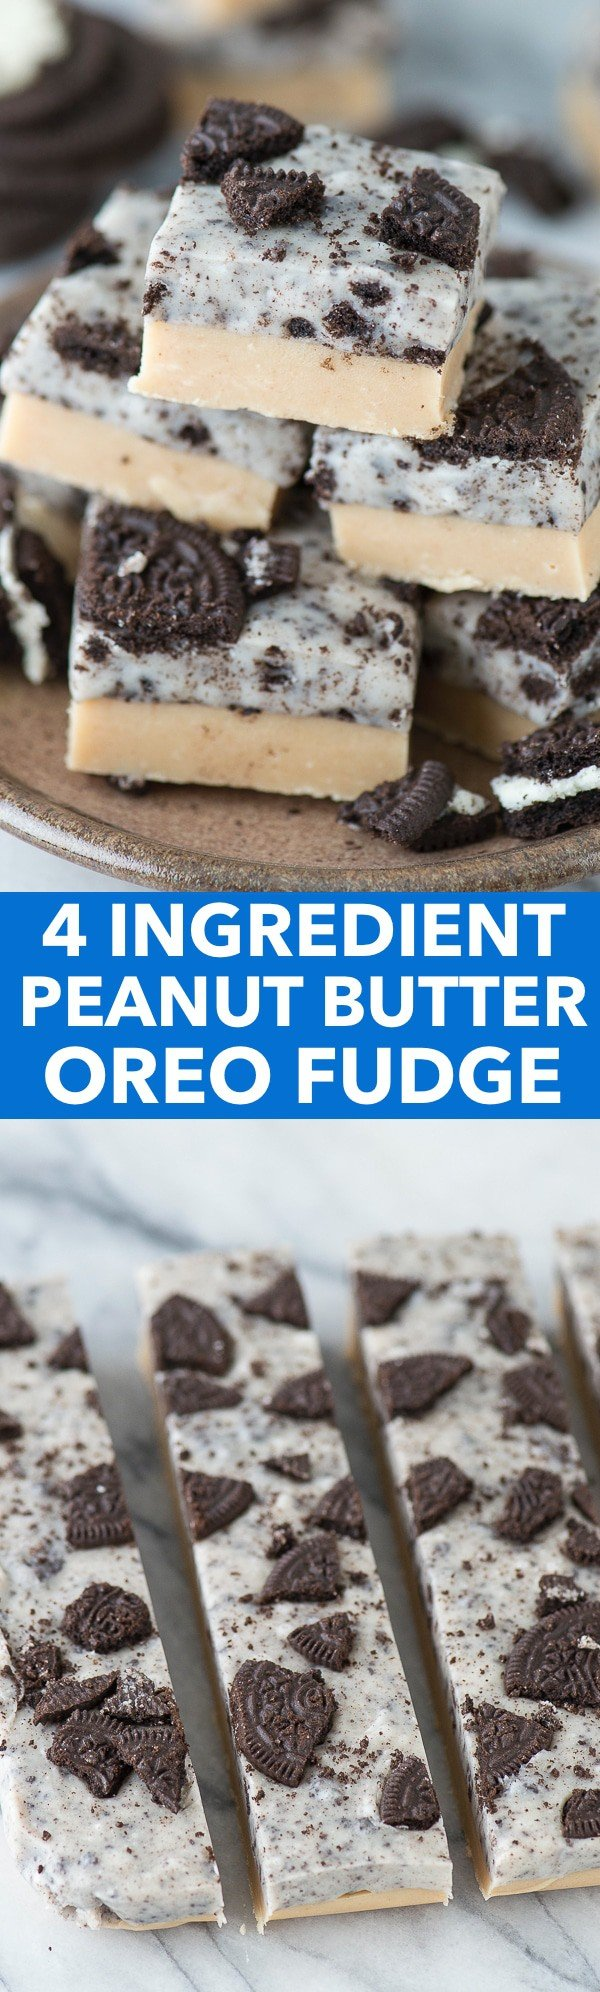 Two layer peanut butter oreo fudge recipe that is only 4 ingredients! This is easiest and BEST fudge recipe!